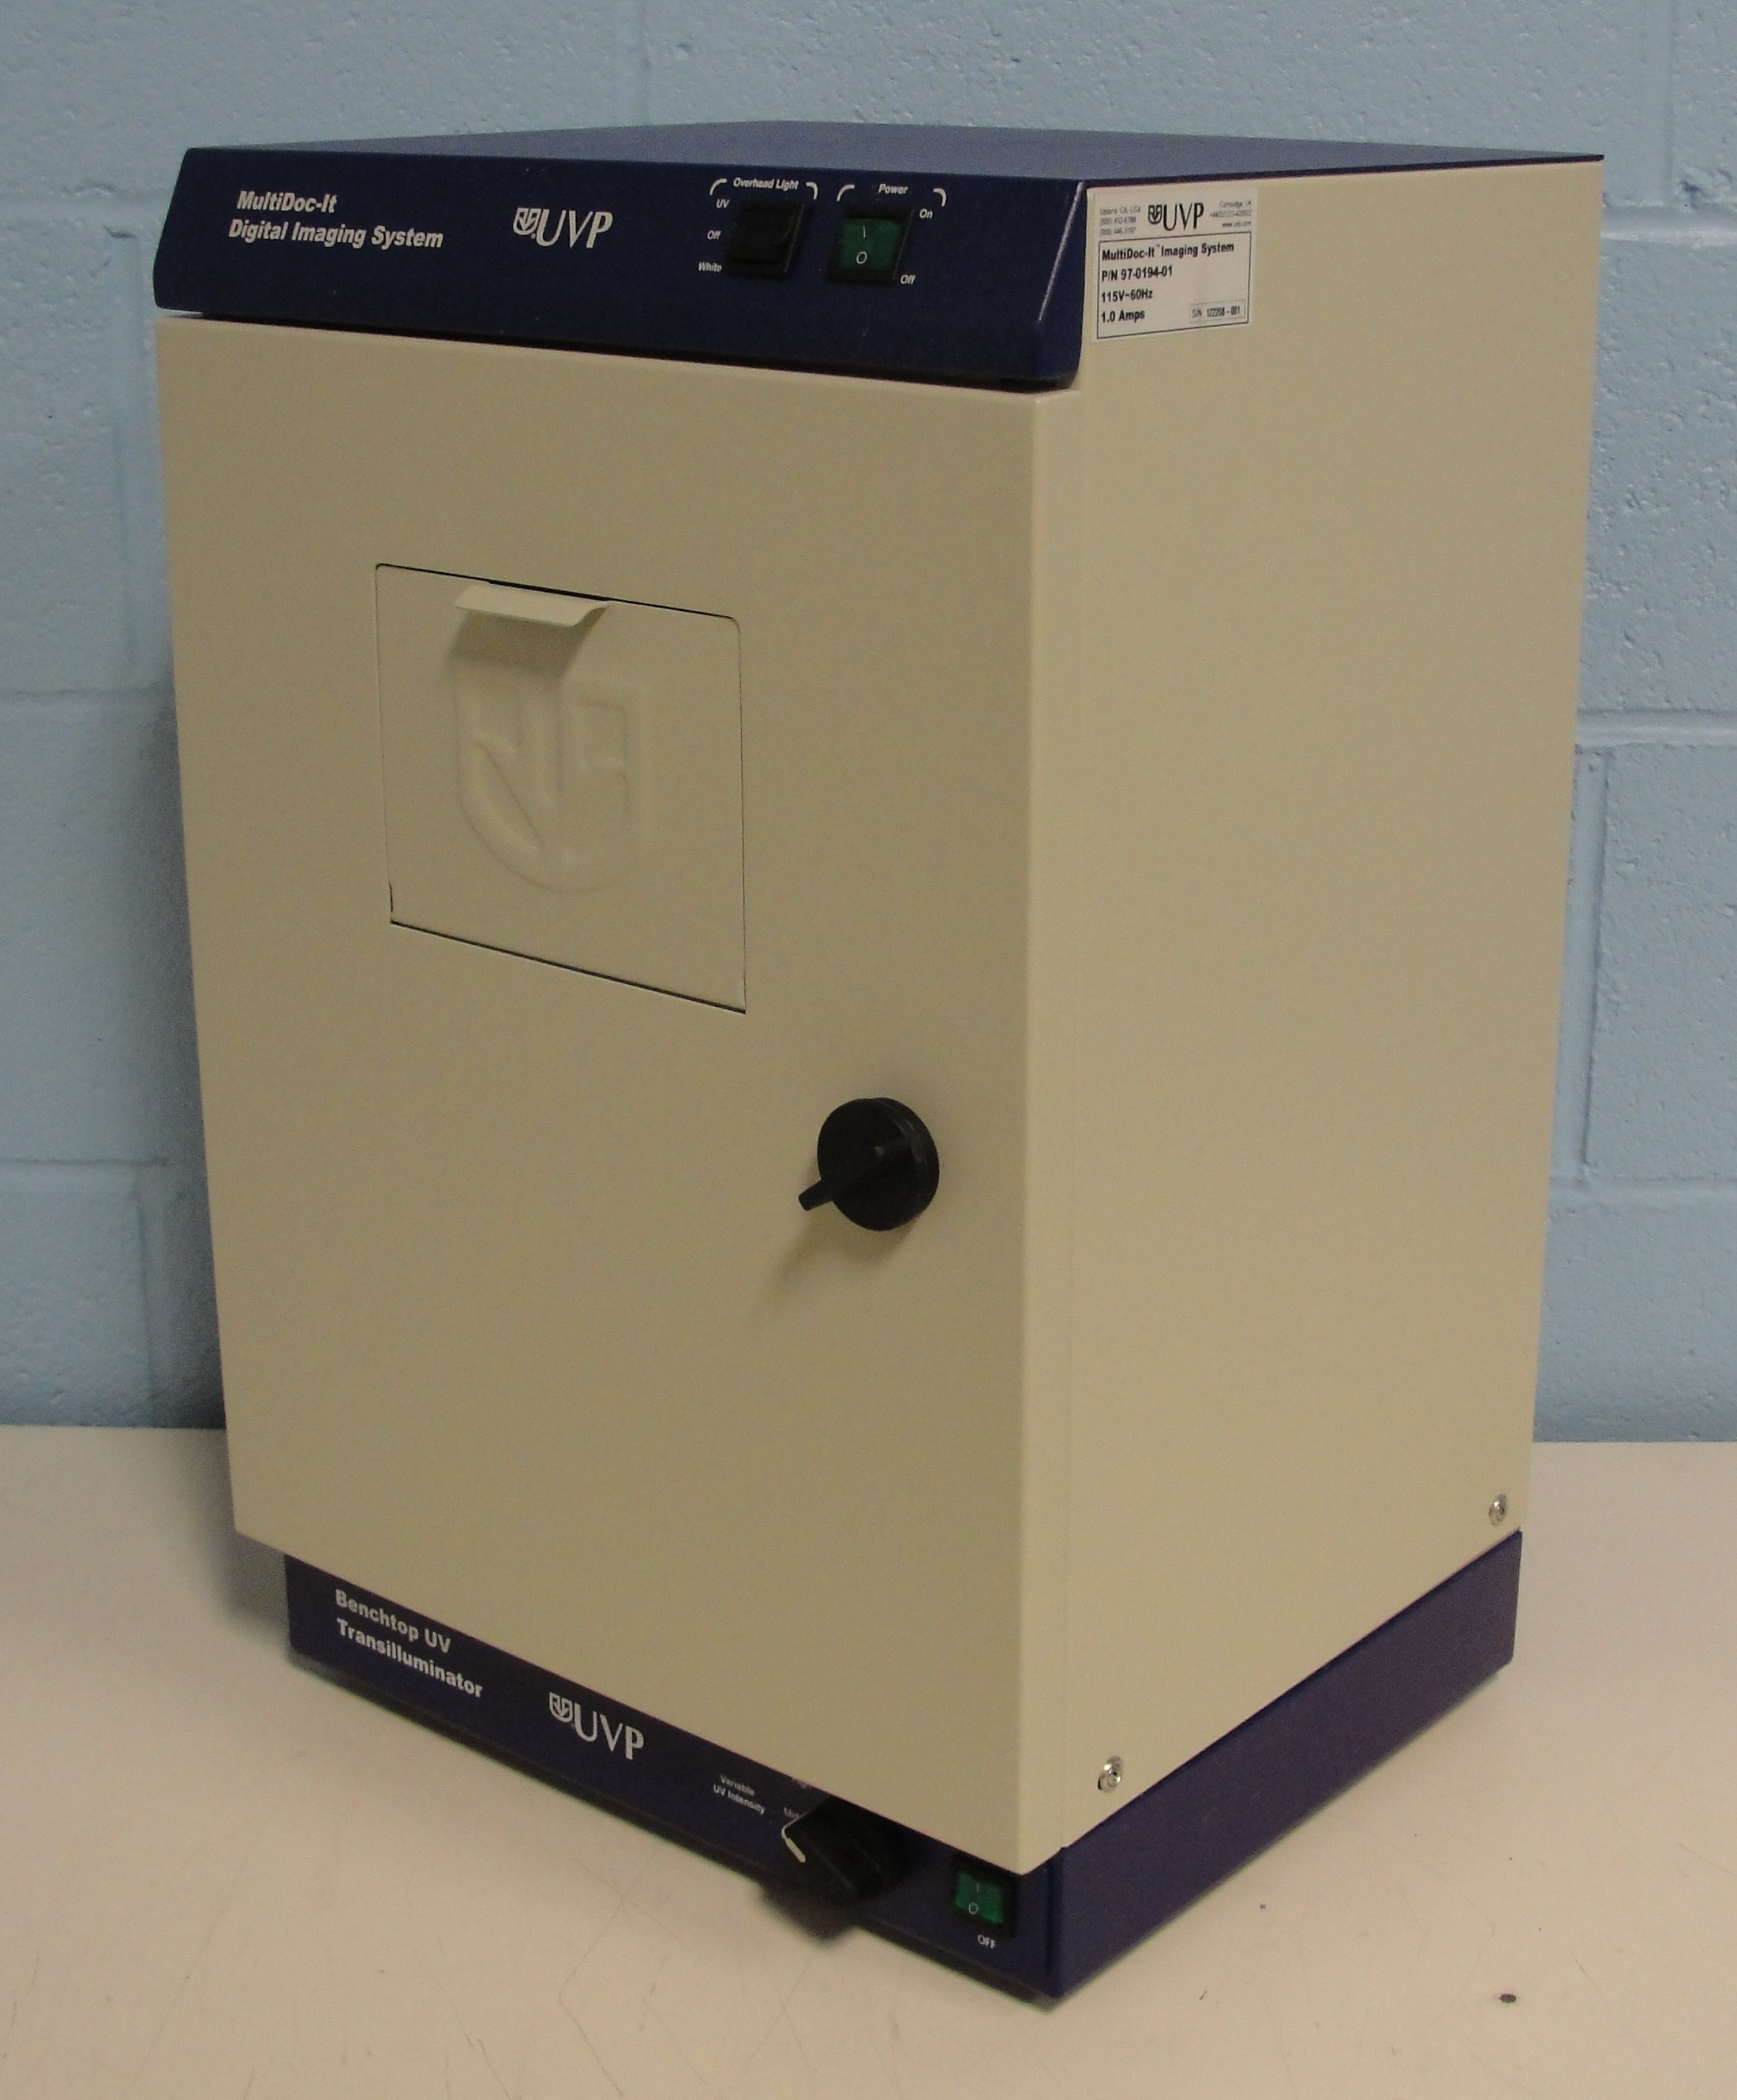 Refurbished Uvp Multidoc It Imaging System Model 105 With